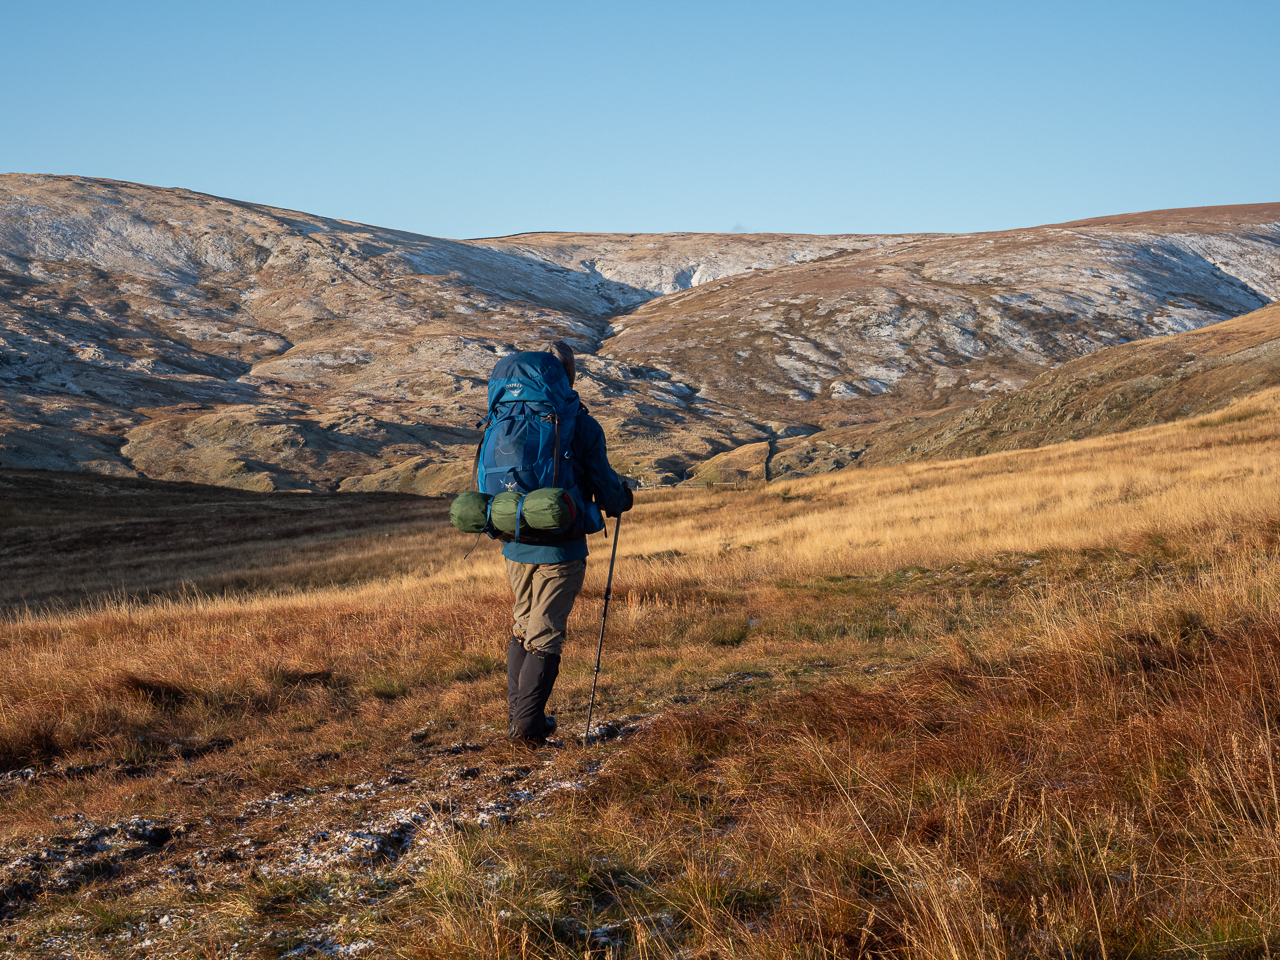 A hiker in the Shap Fells in the Lake District, Cumbria, England.